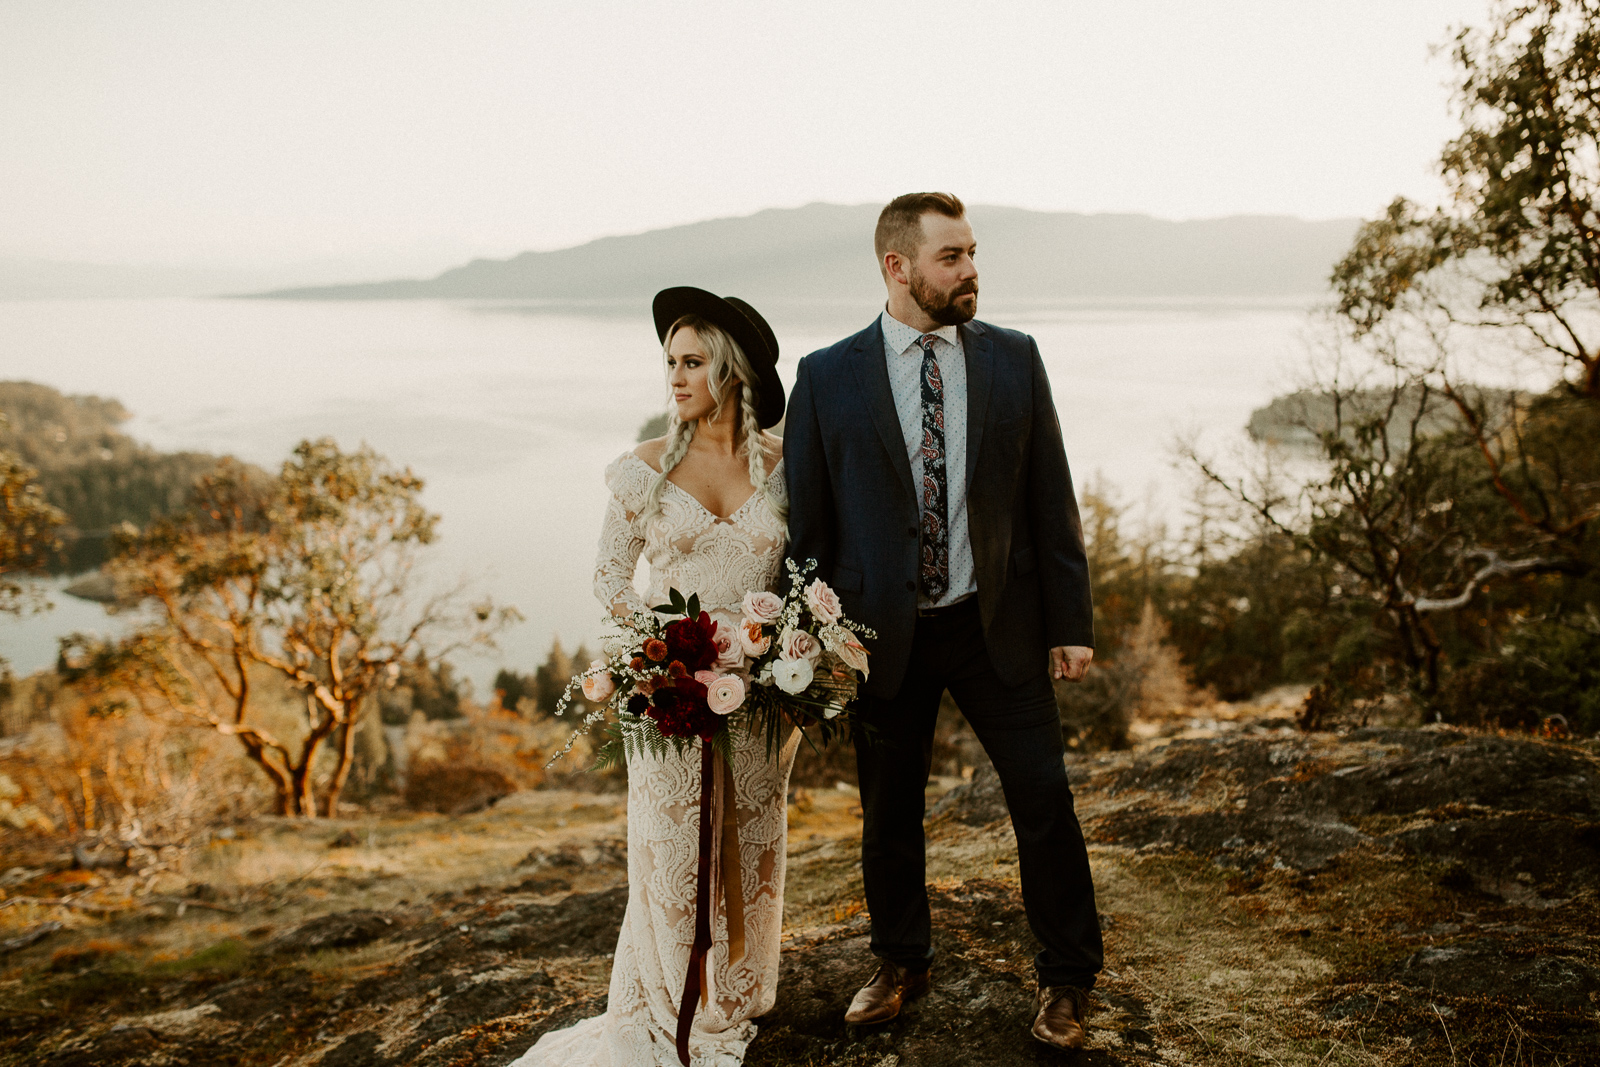 Luke Lambertson Photo_BritishColumbia_Canada_AdventurousCouple_Elopement_IMG-8034.jpg